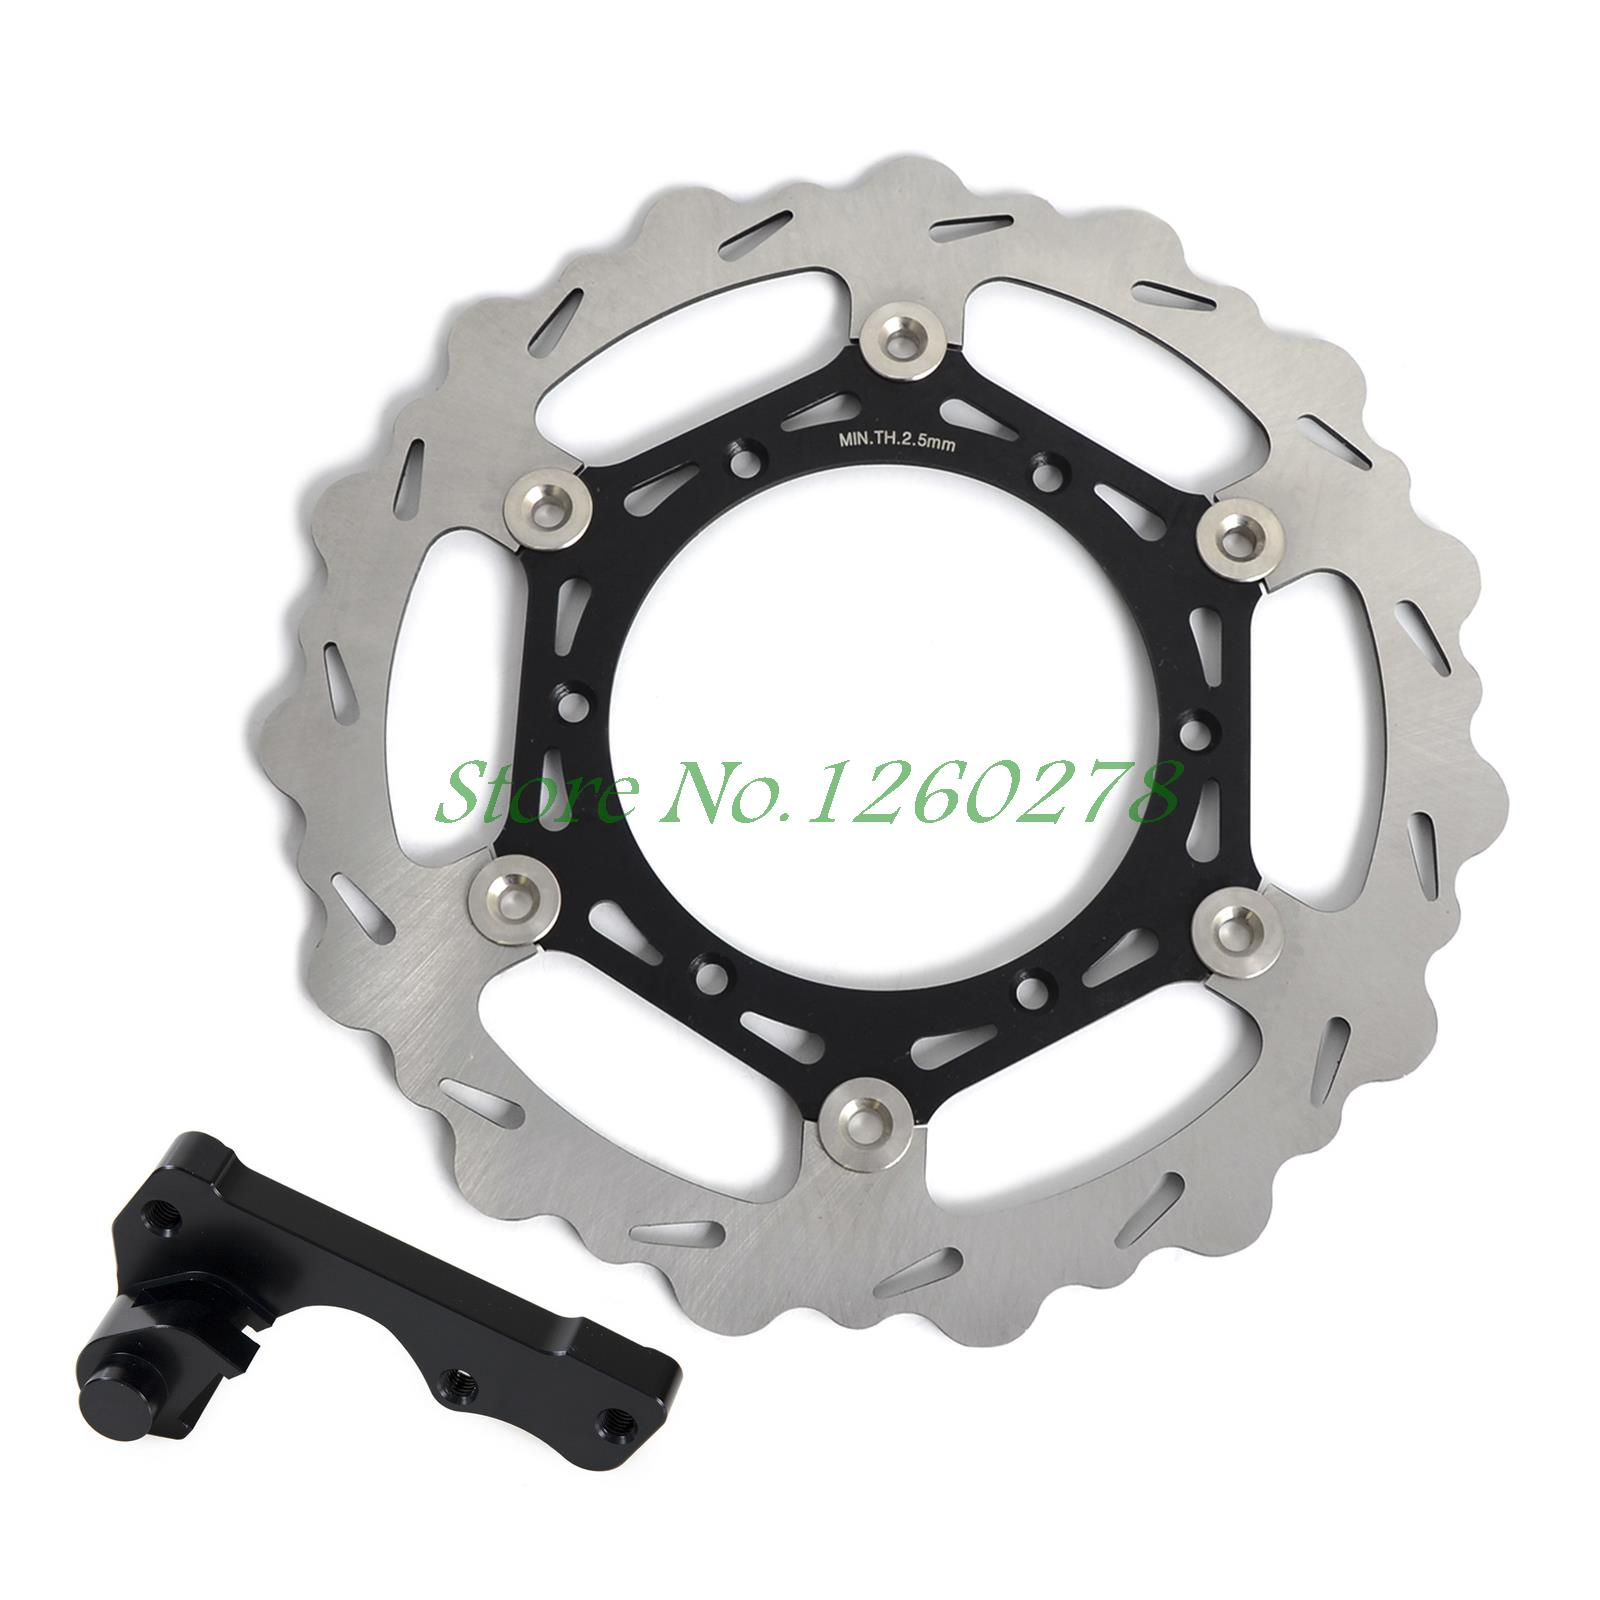 270mm Oversize MX Brake Disc Bracket Kit for Yamaha YZ125 YZ250 YZ250F YZ450F 1998 2007 Motorbike Front Brake Disc with Bracket high quality 270mm oversize front mx brake disc rotor for yamaha yz125 yz250 yz250f yz450f motorbike front mx brake disc